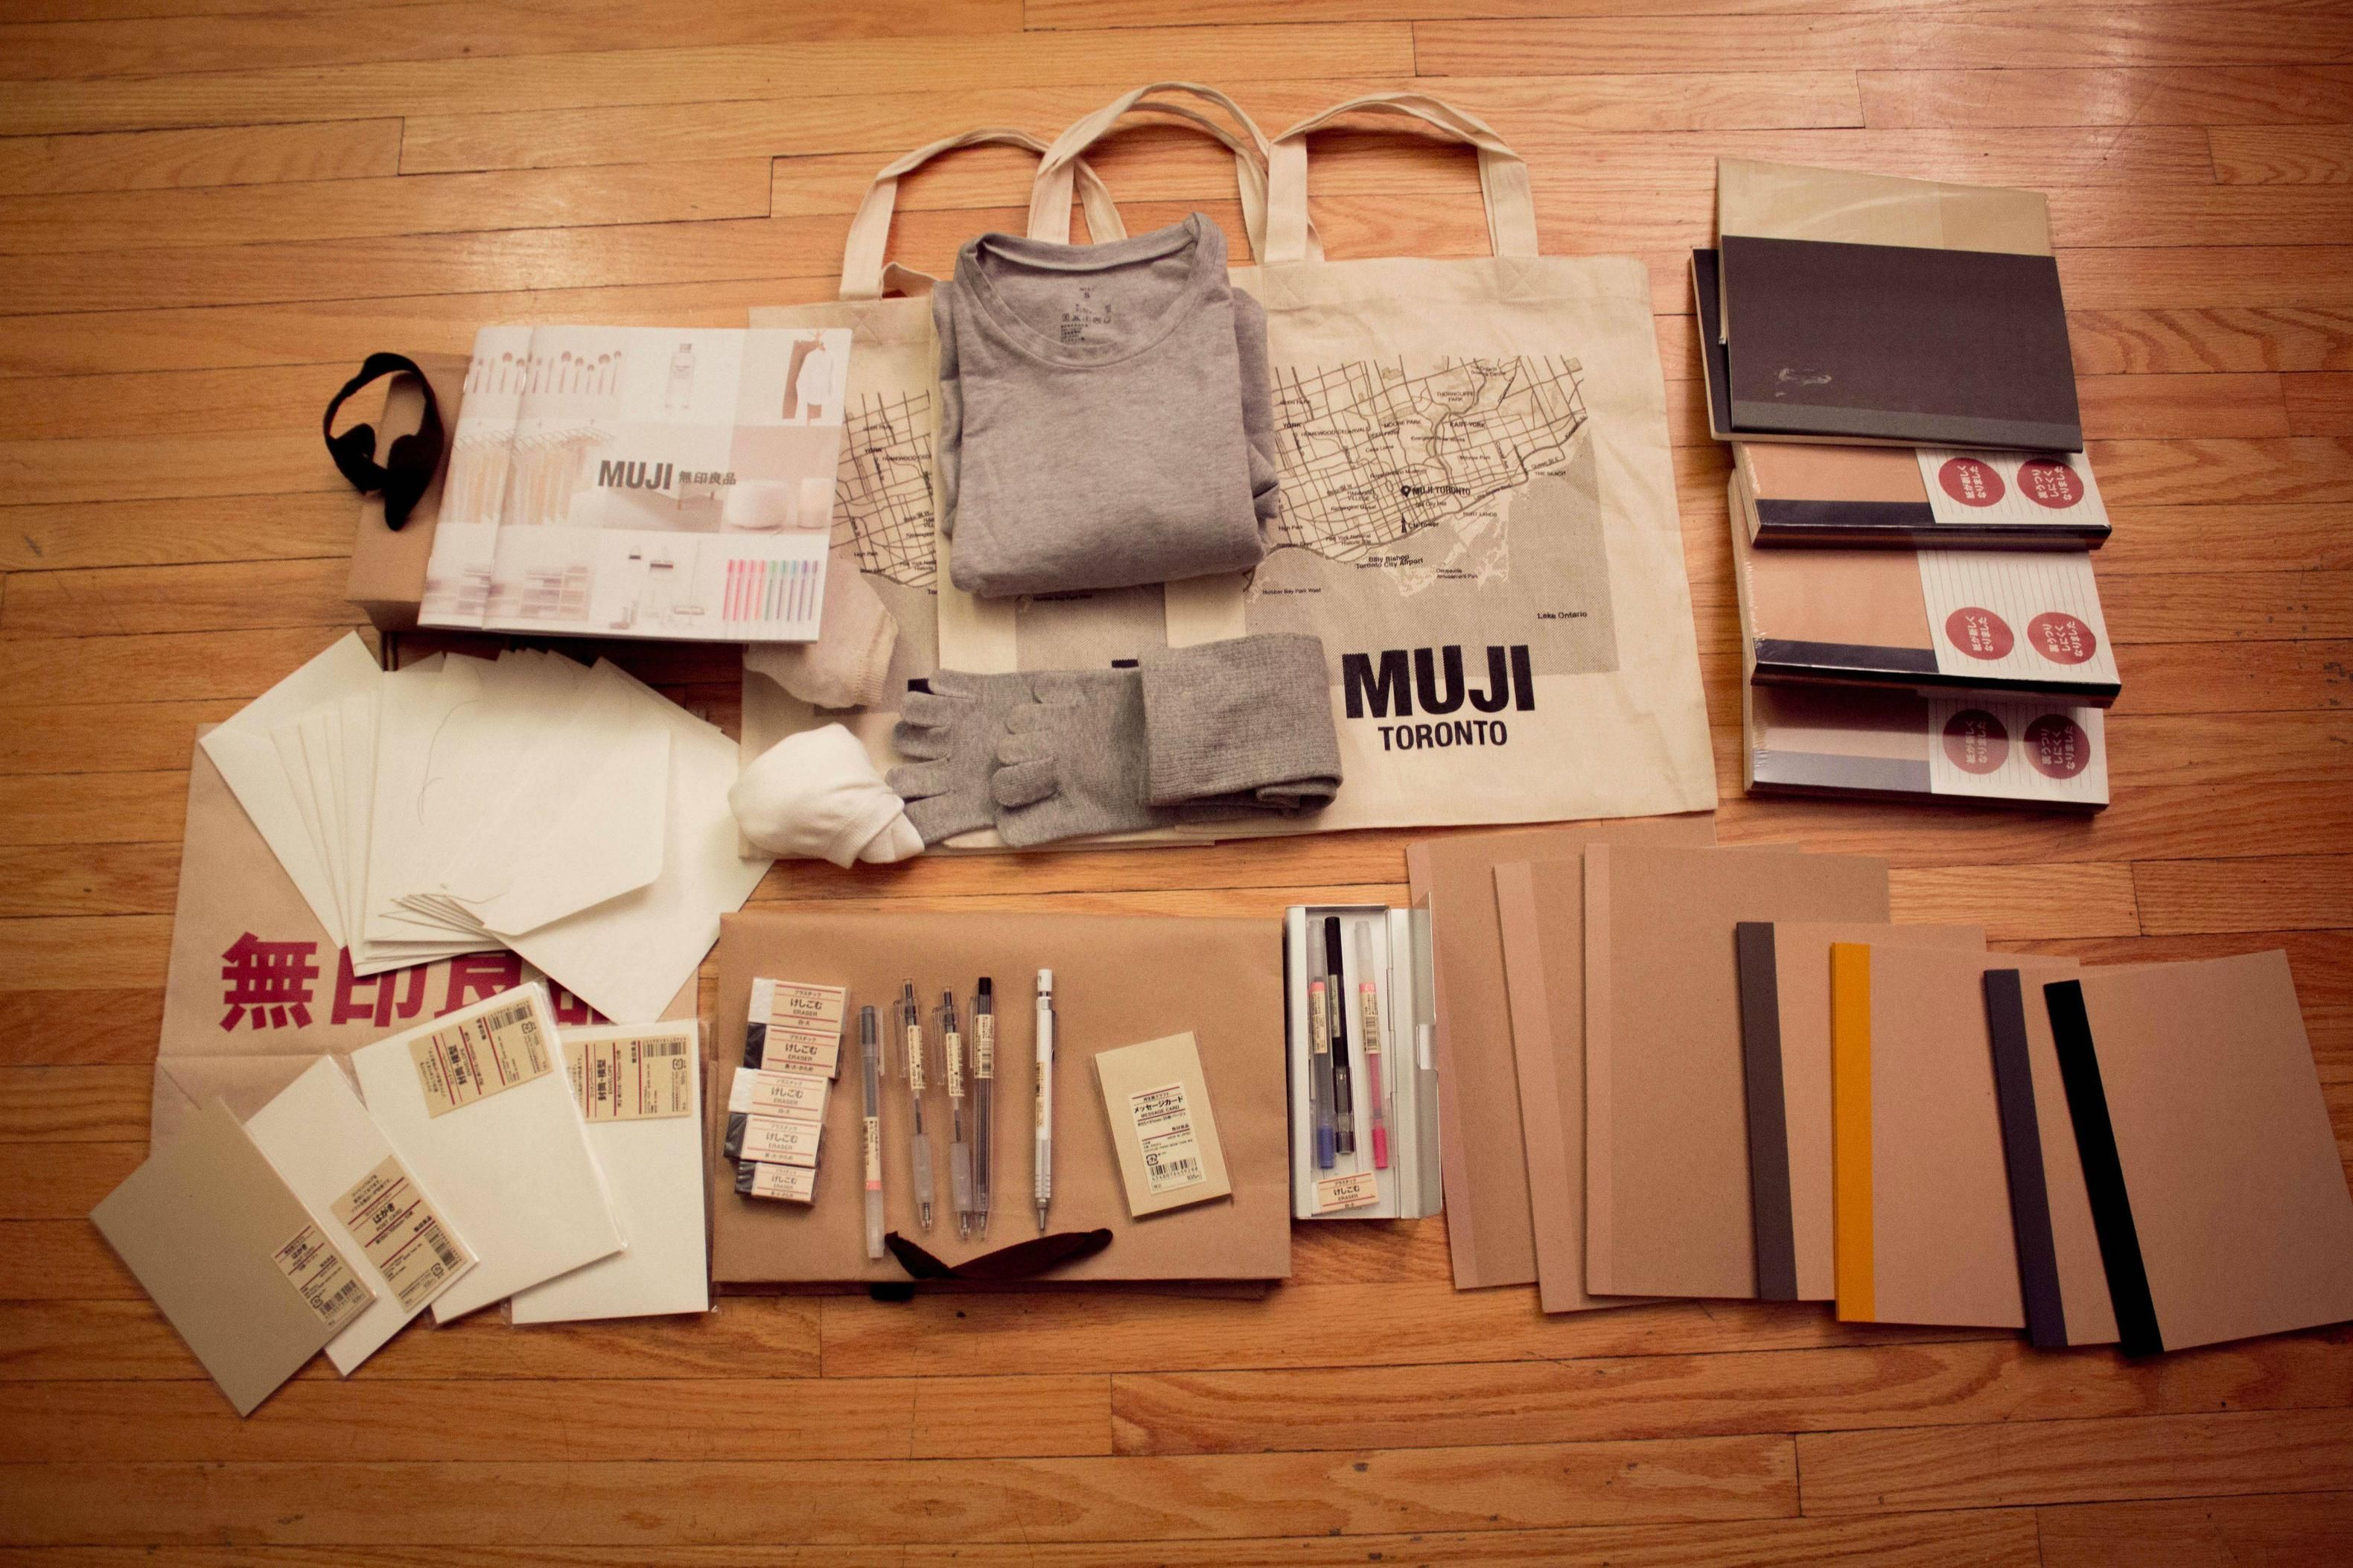 MUJI stationery (especially black pens and plain paper ...